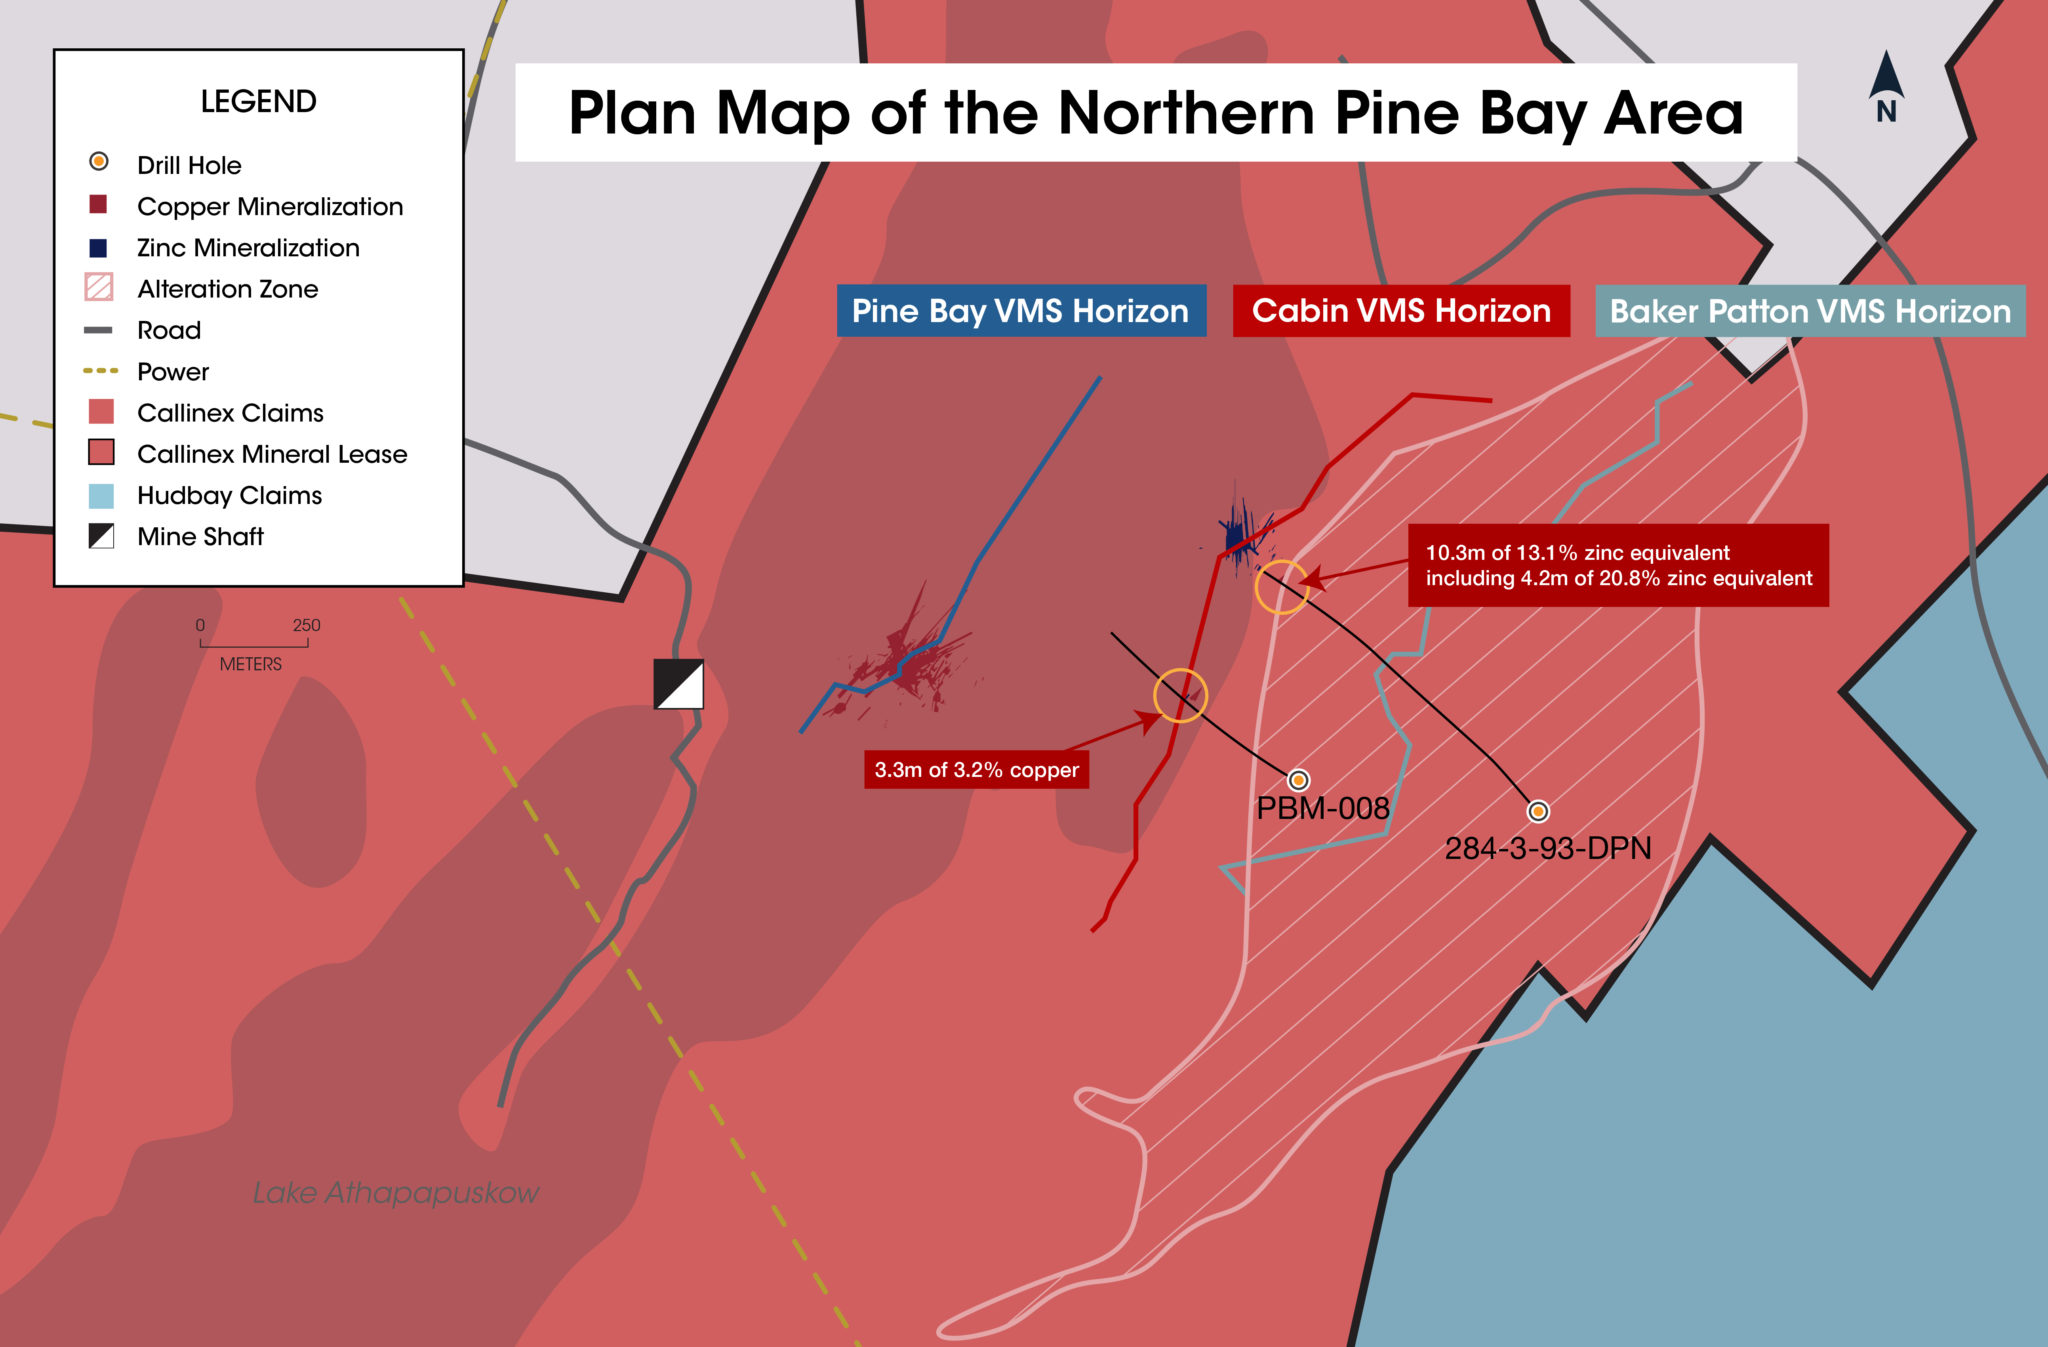 plan-map-of-the-northern-pine-bay-area-01